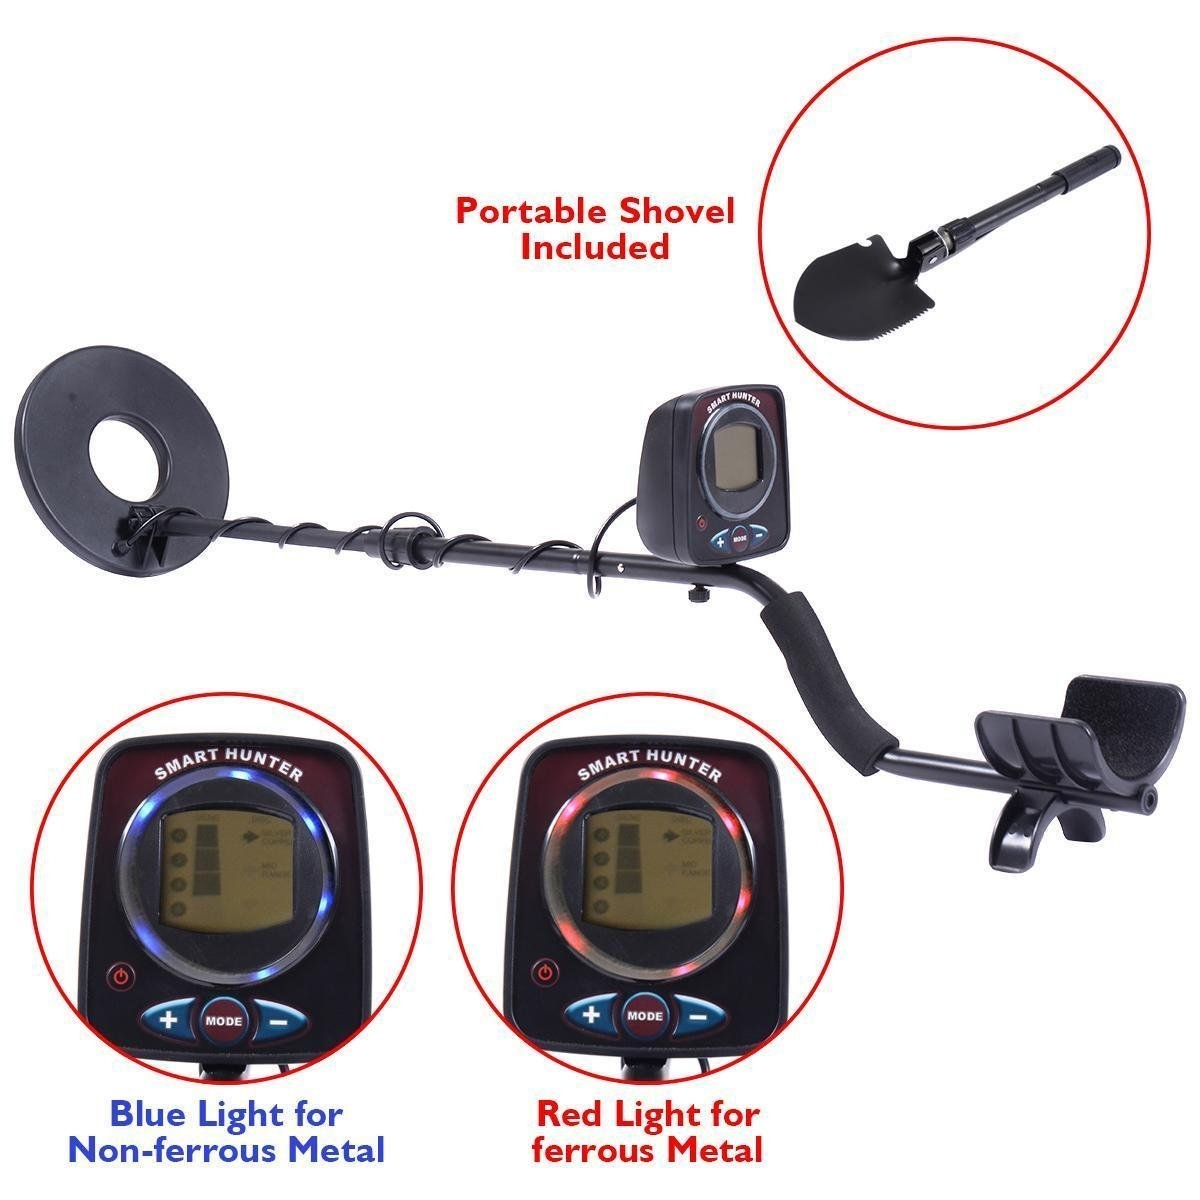 New MTN-G LCD Metal Detector Kit Sensitive Search Treasure Hunter w Shovel Waterproof Coil by MTN Gearsmith